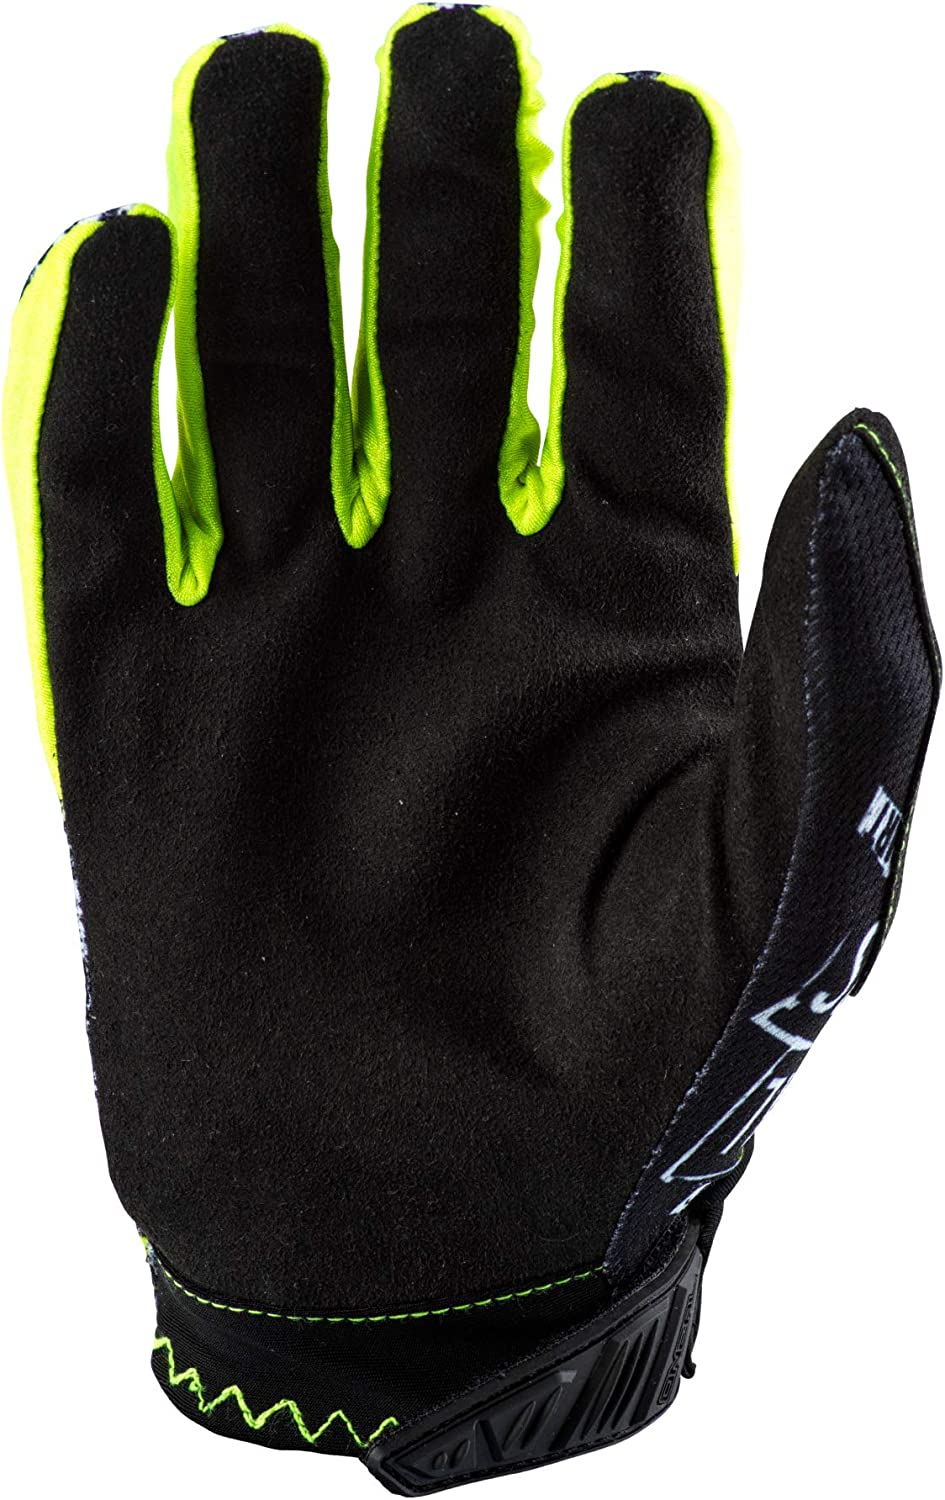 ONEAL Matrix Attack Youth Kinder MX DH FR Handschuhe schwarz//gelb 2020 Oneal